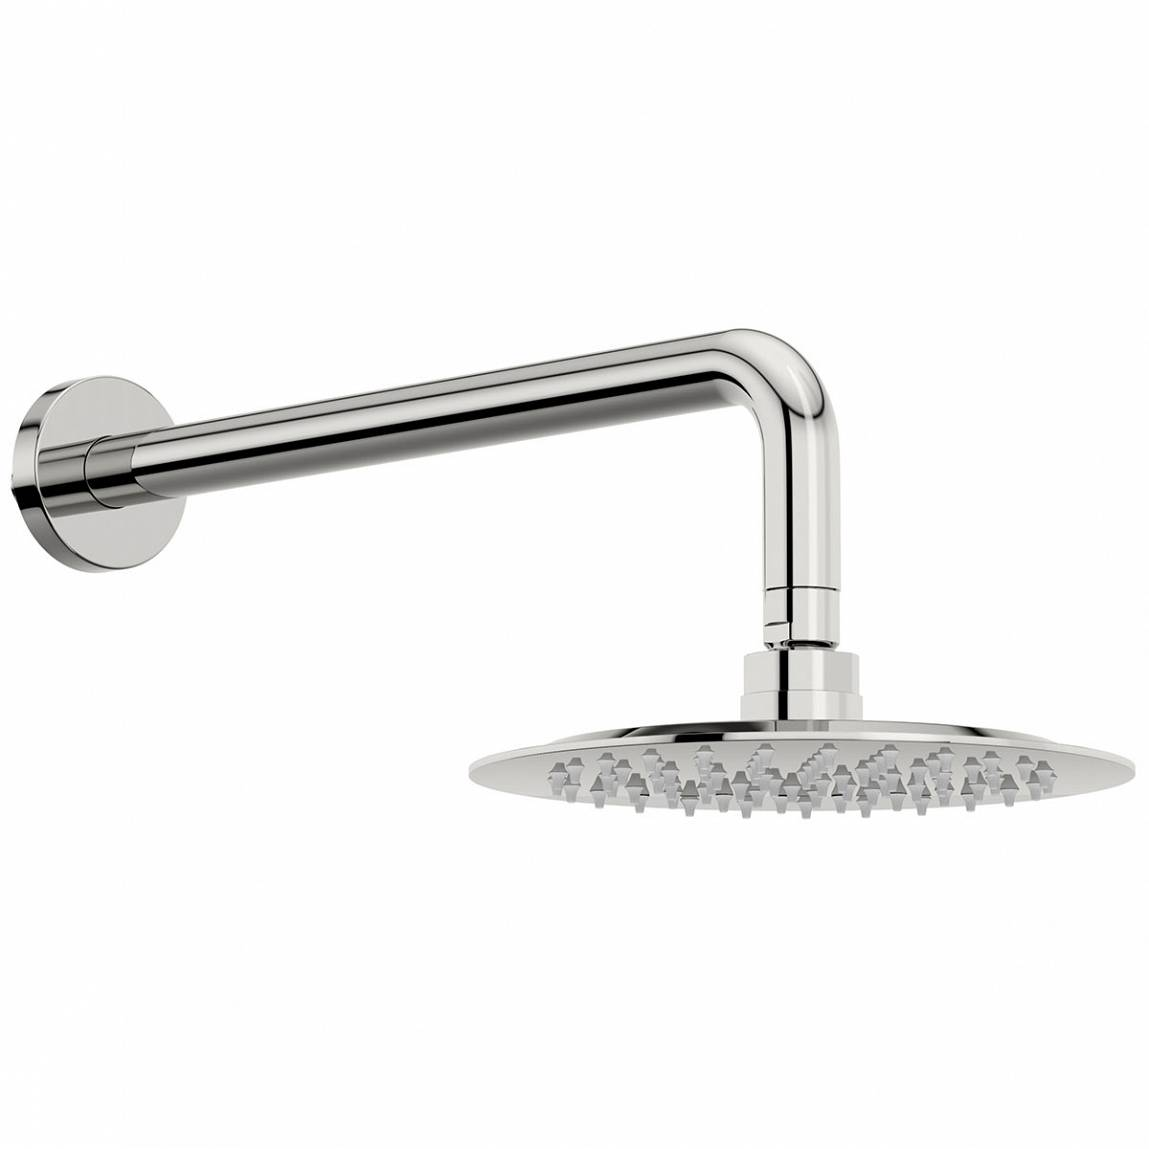 Image of Stratus 200mm Shower Head & Curved Wall Arm